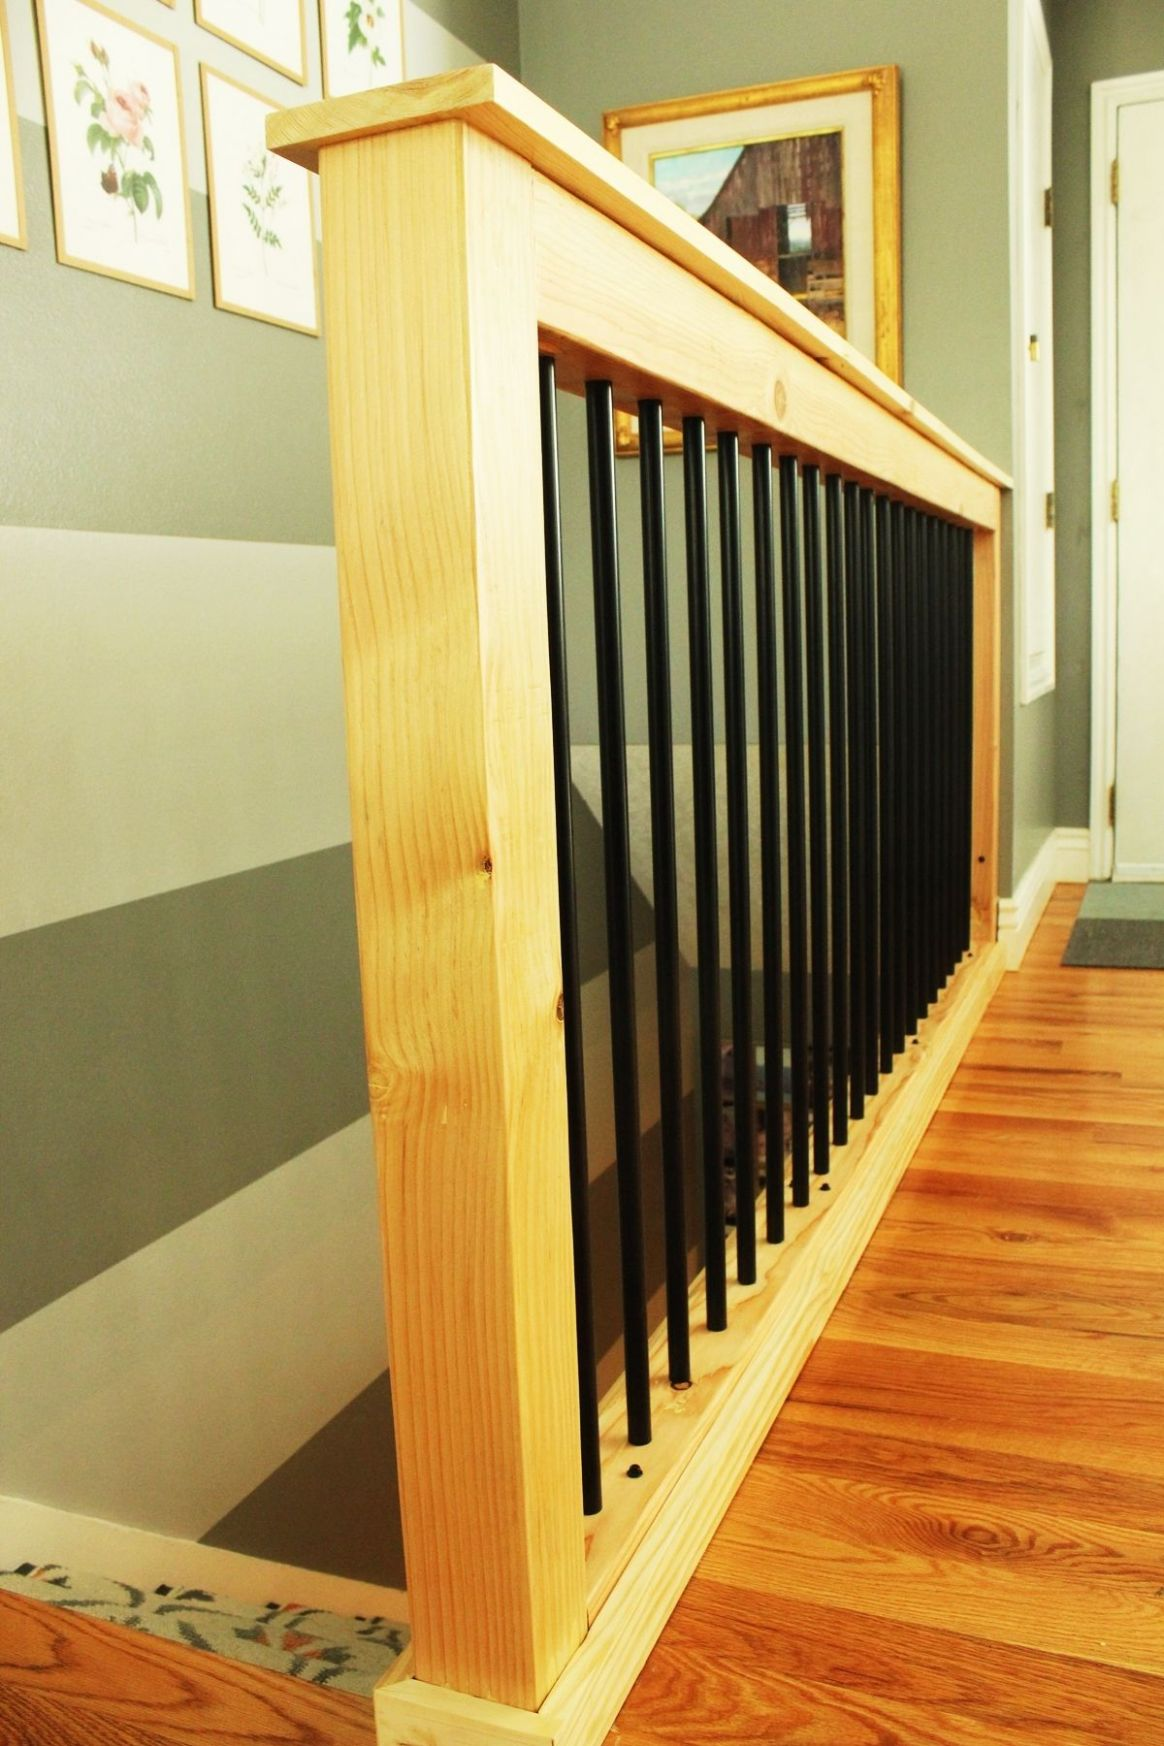 DIY Stair Handrail with Industrial Pipes and Wood - balcony railing ideas indoor